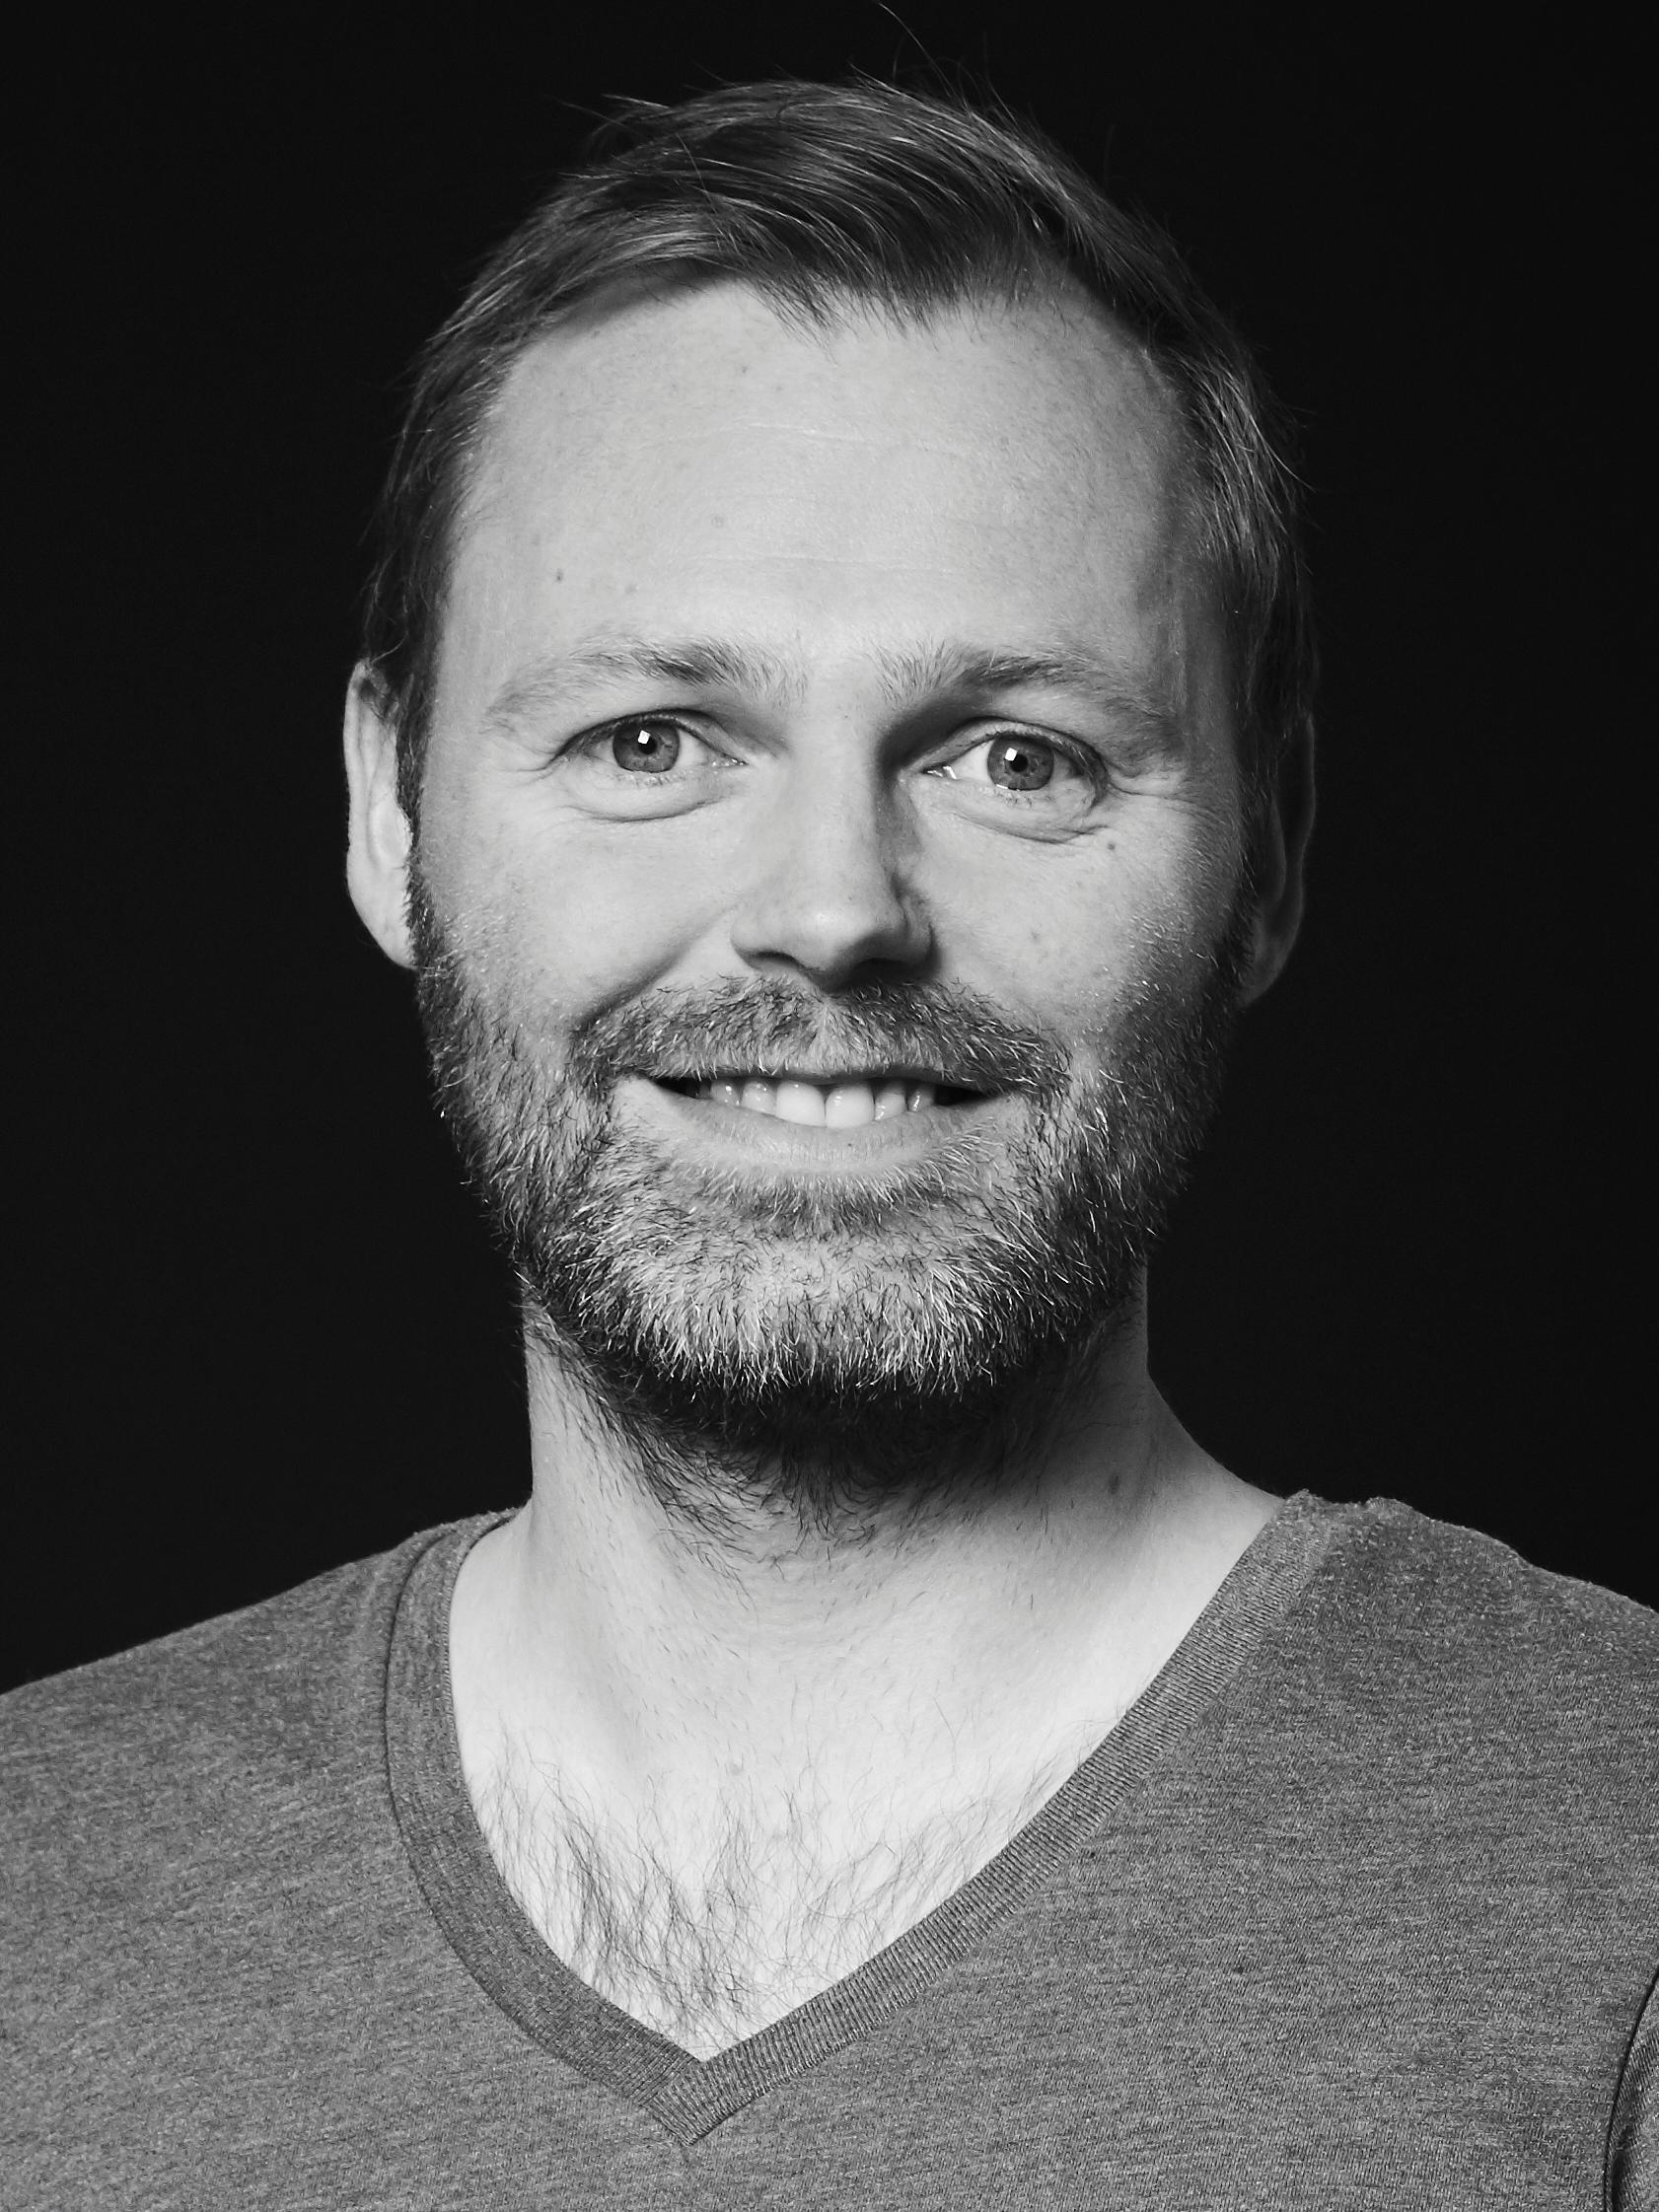 Photo of Morten Kure Kattenhøj